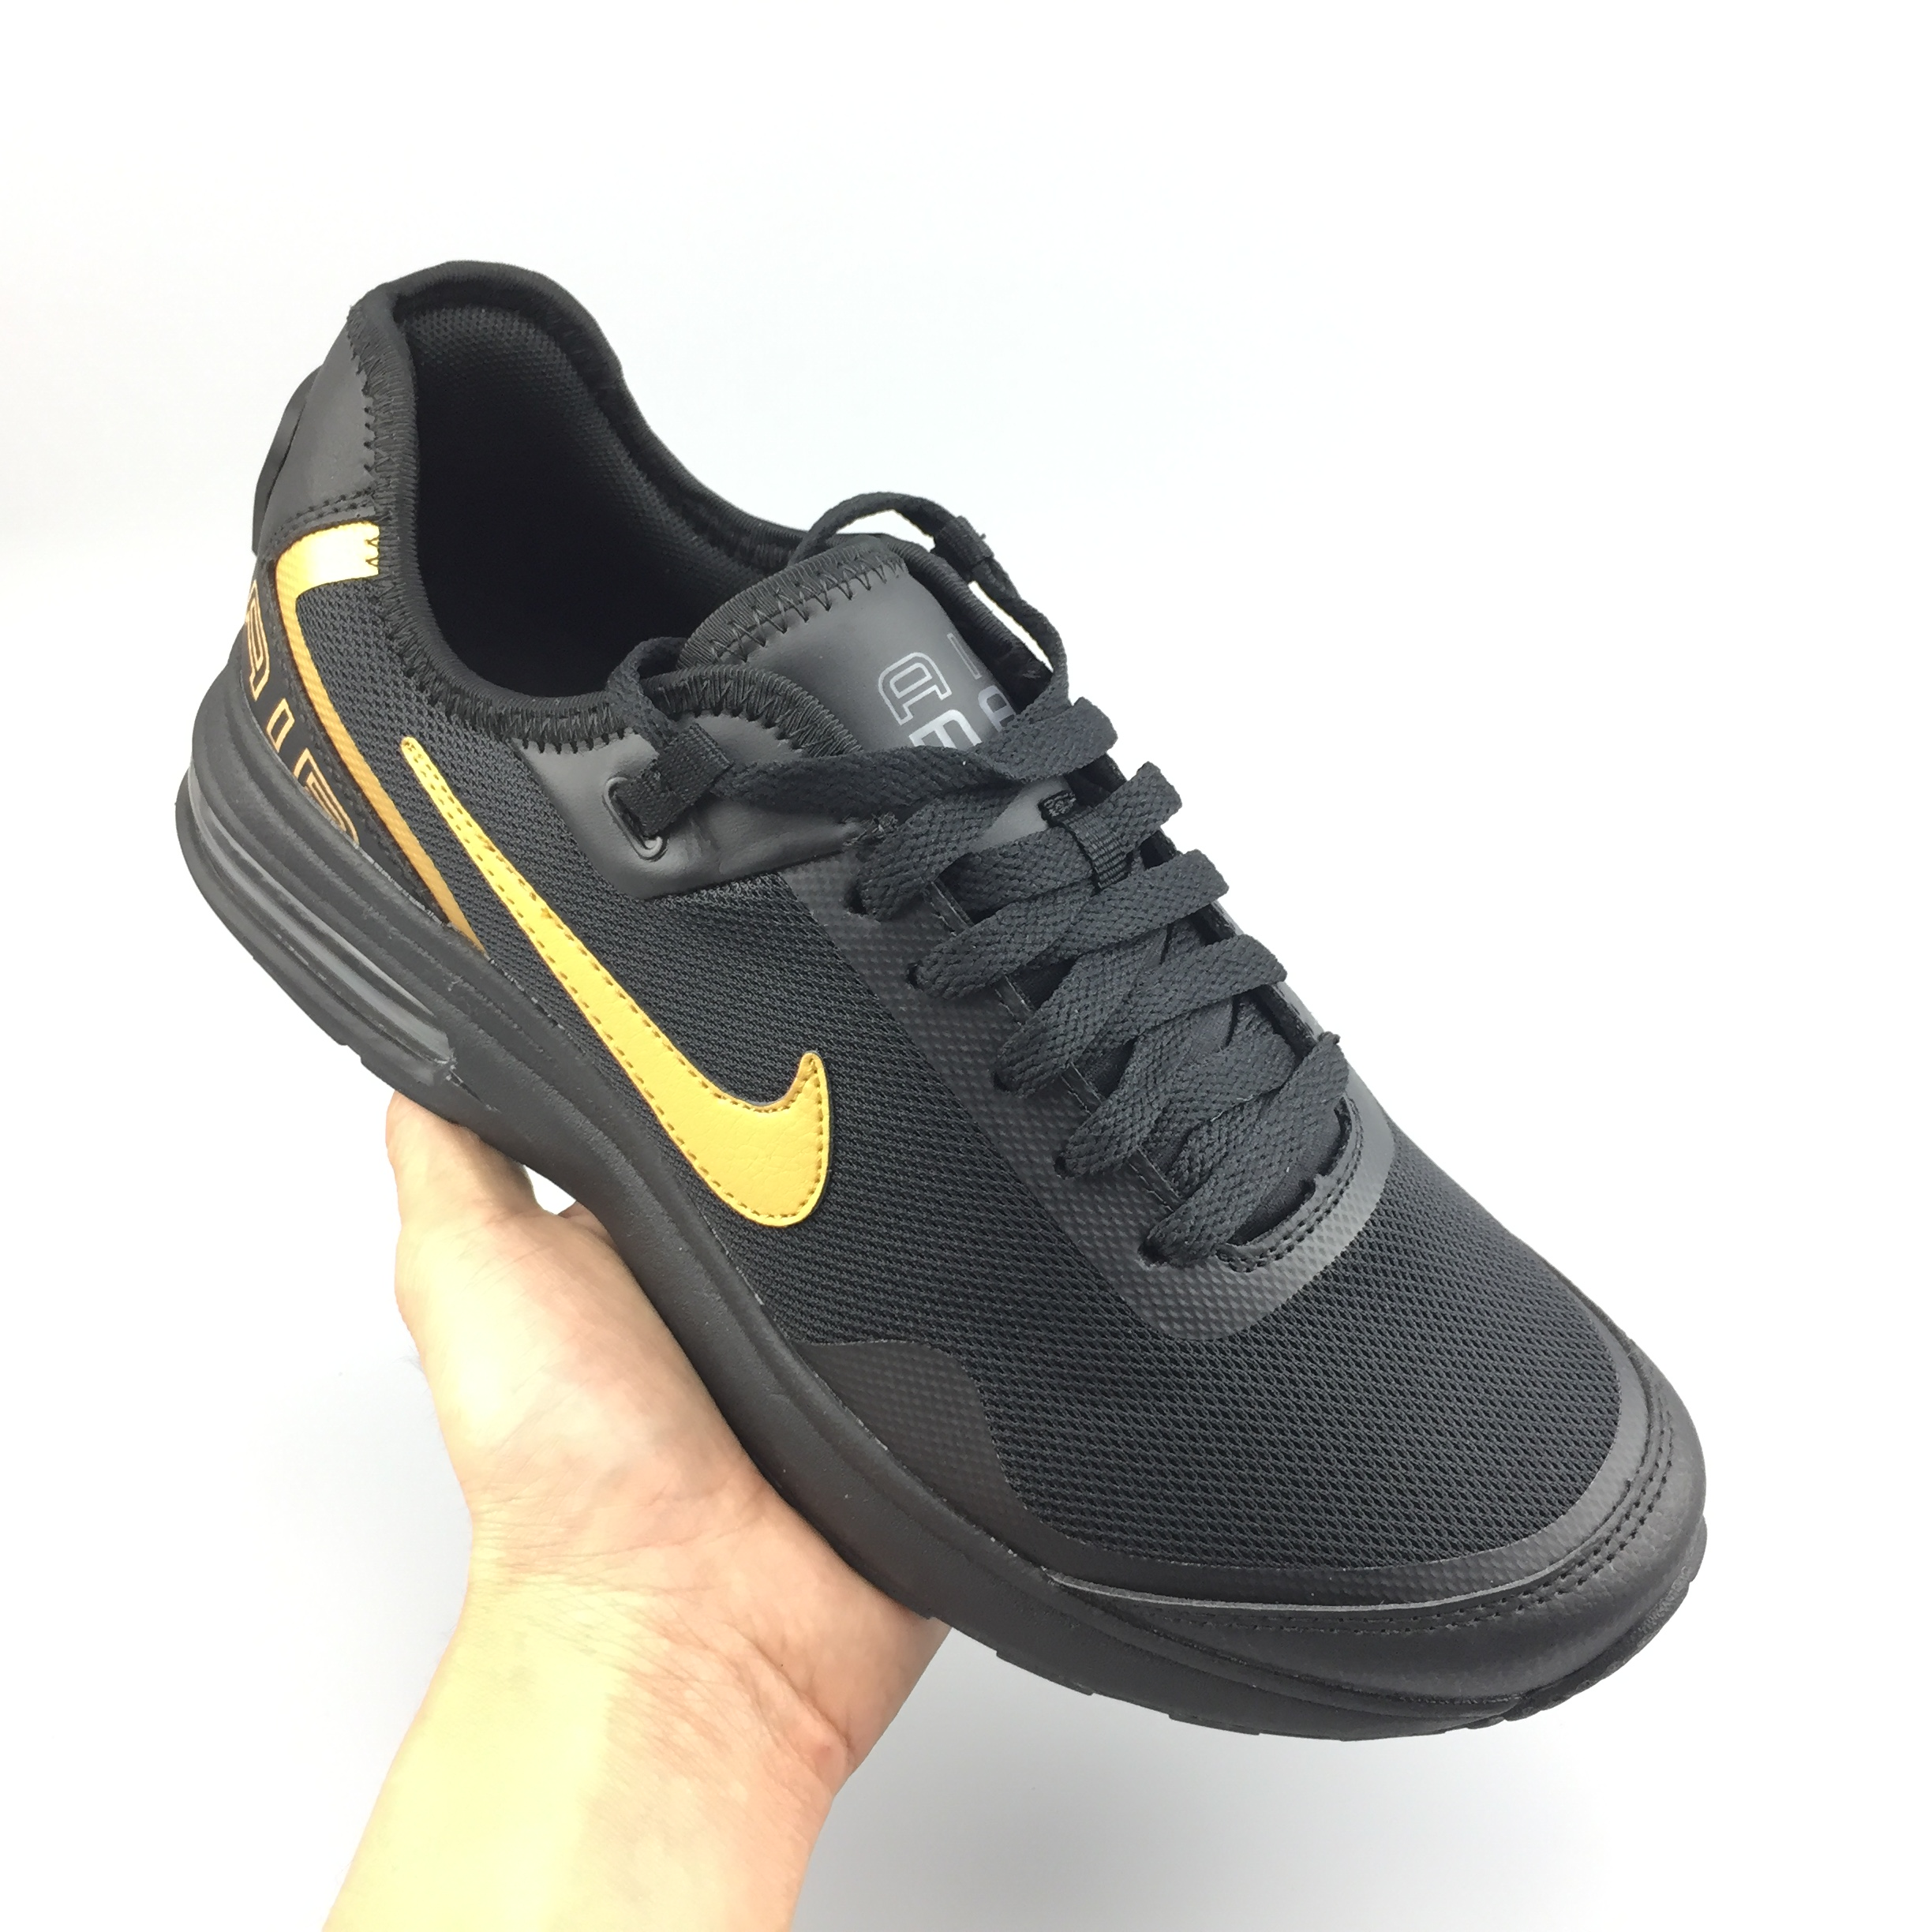 Nike Air Max LB Black Yellow Shoes